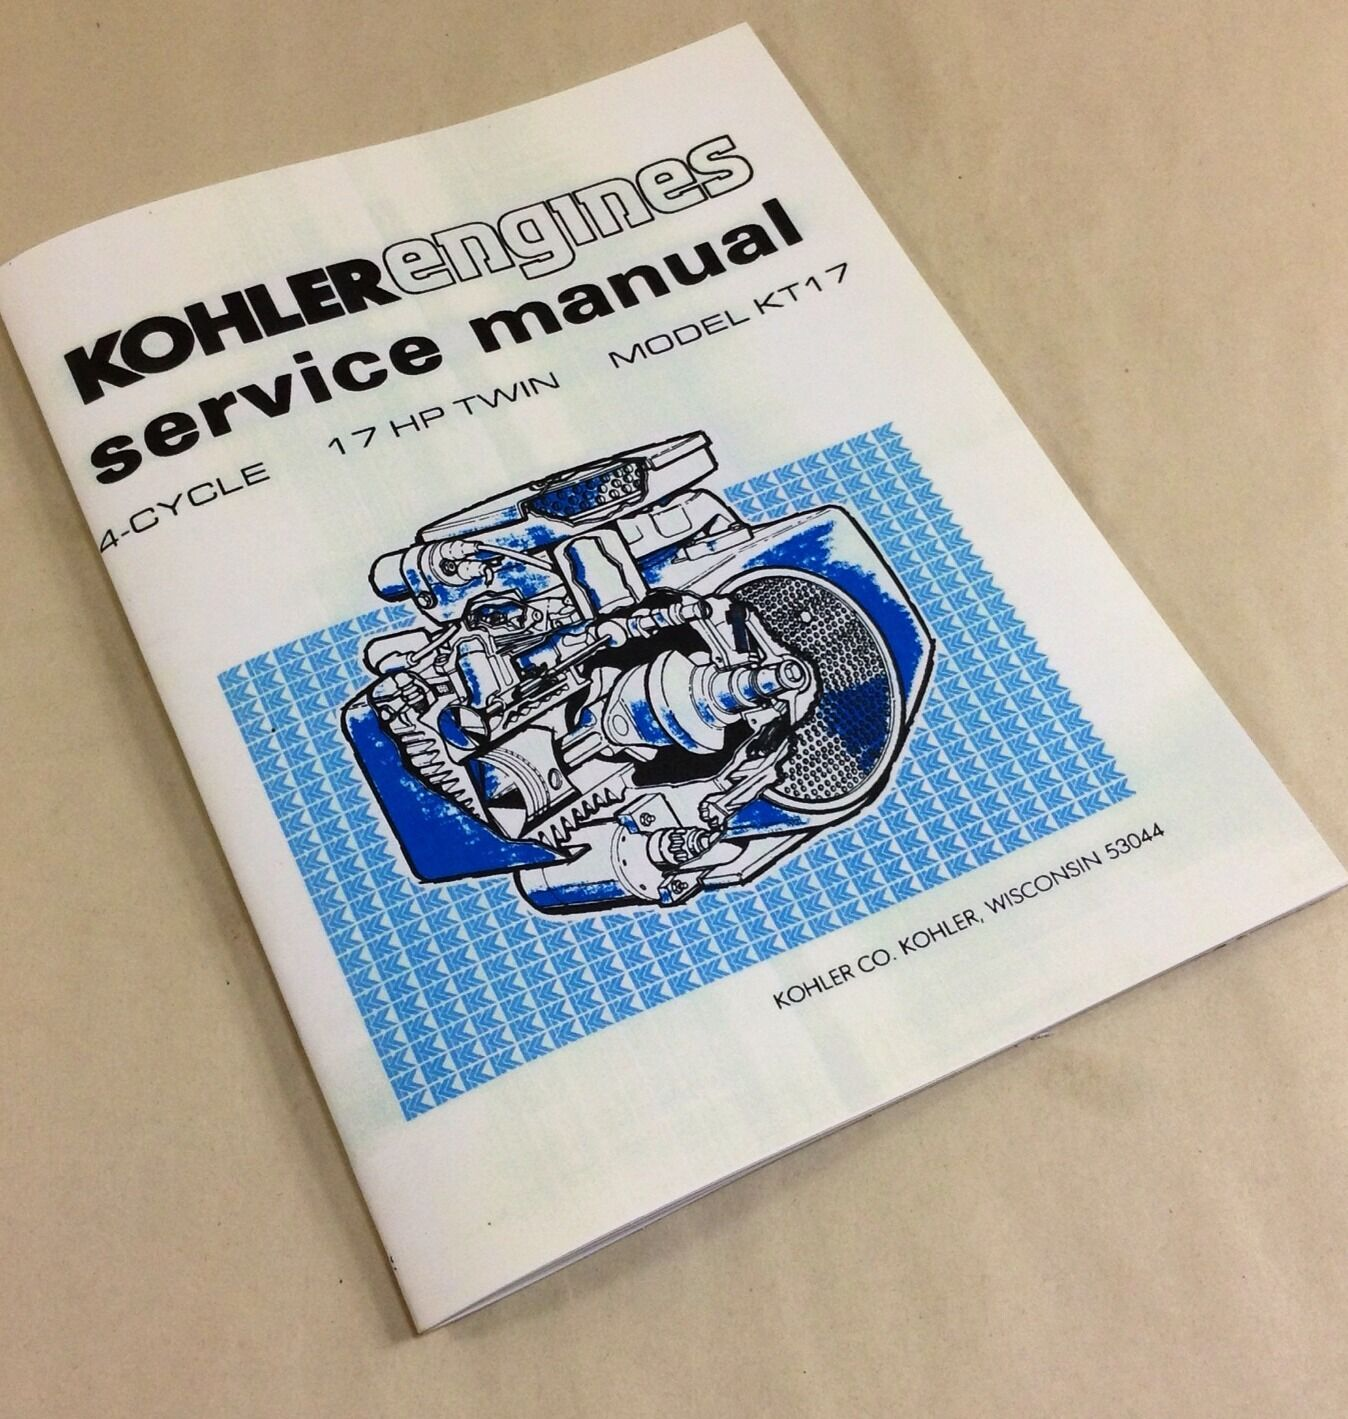 Kohler 4 Esz Repair Manual Est Marine Distributor Wiring Diagram Chevy Log In Popular Rv Source At Reasonable Price Dynagen Controls New Old Stock Onan Asco Ats Ordered My Had Them Days It Ran Fine Yesterday Afternoon For